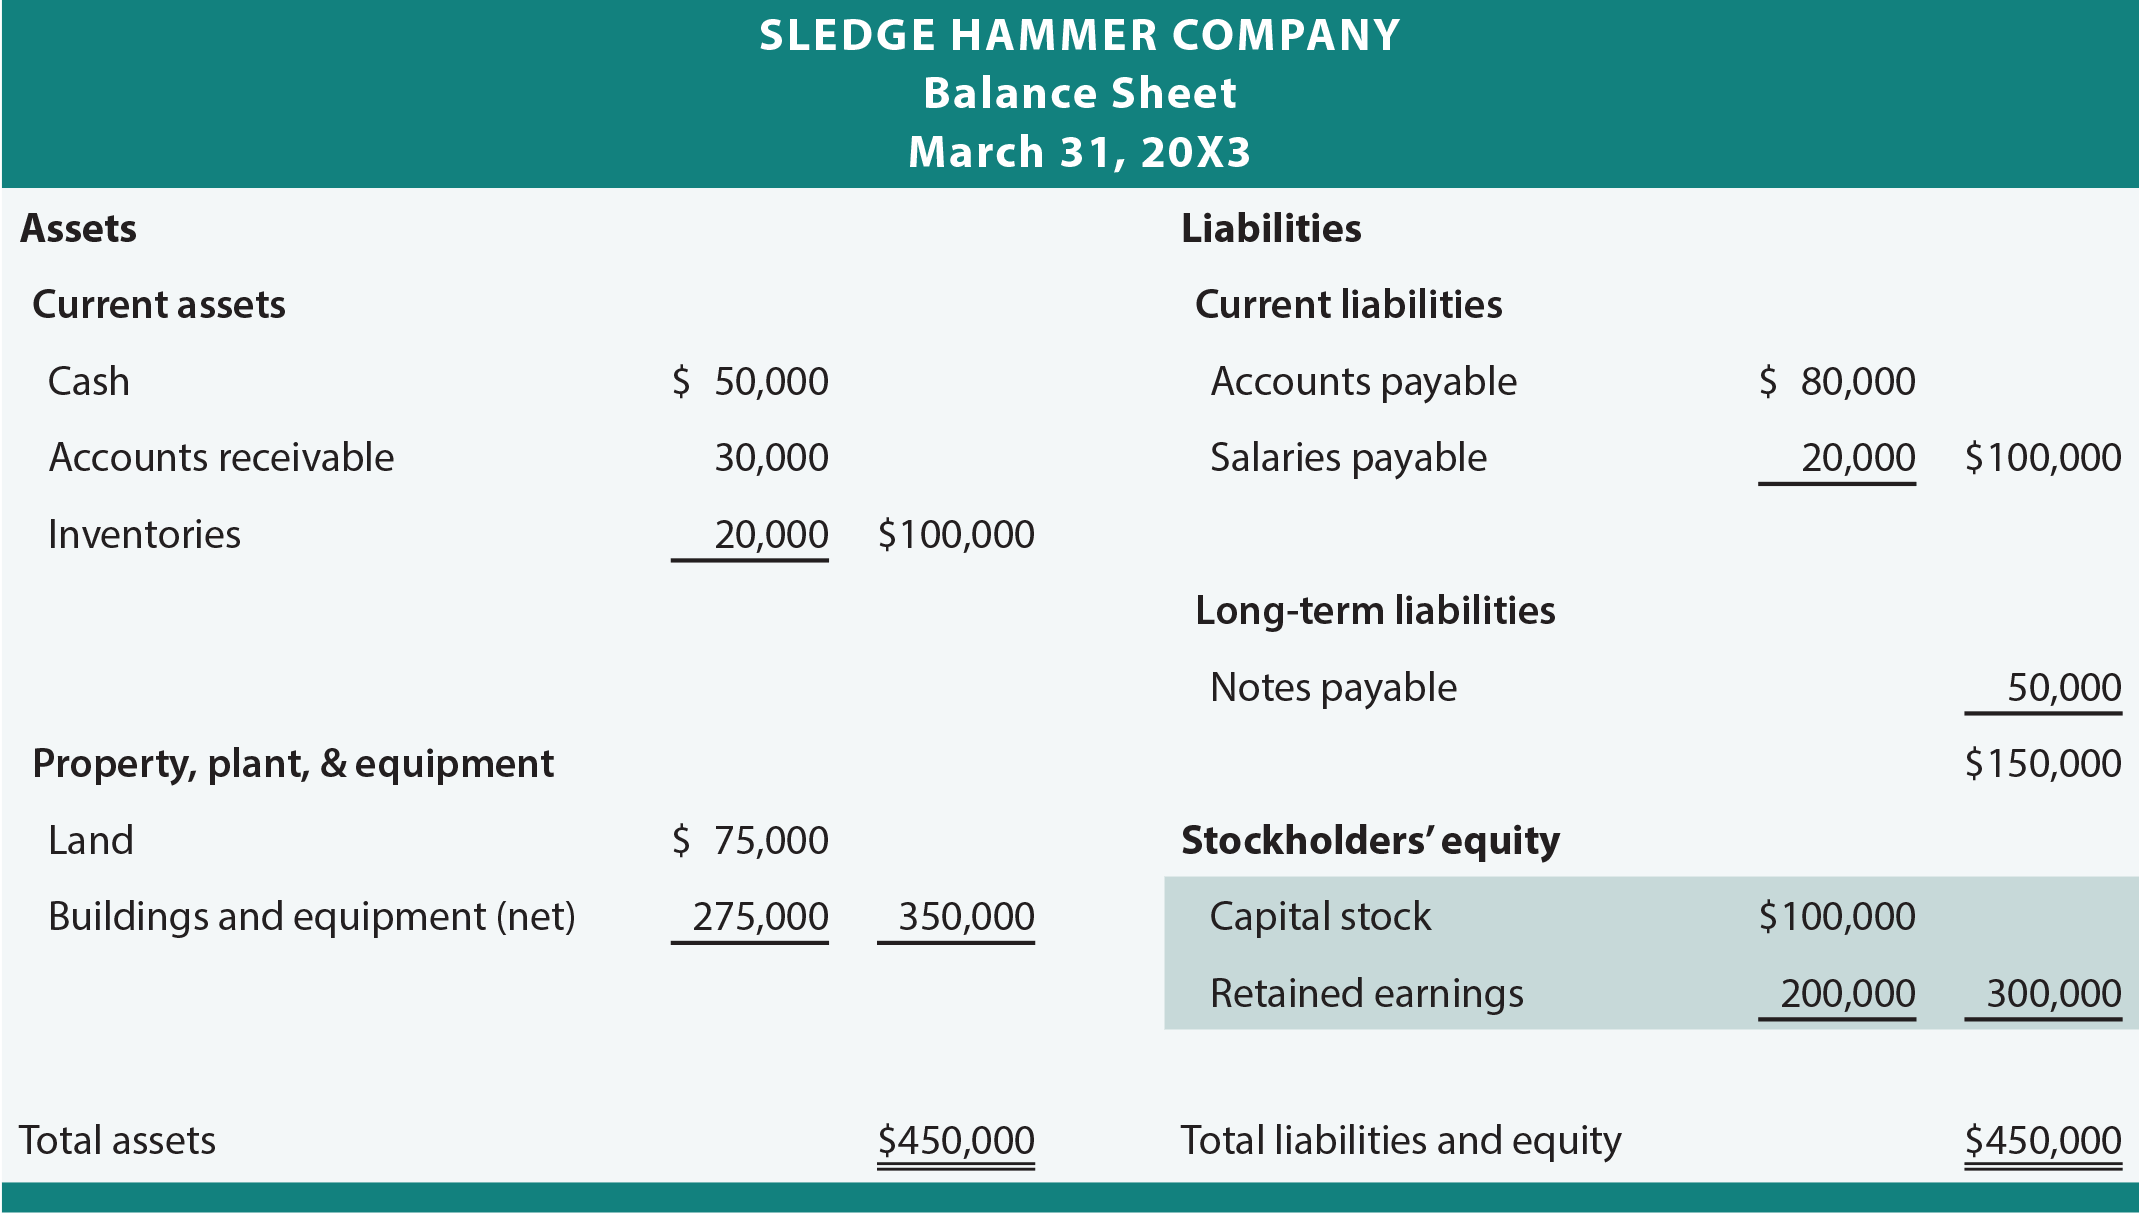 Sledge Hammer Balance Sheet